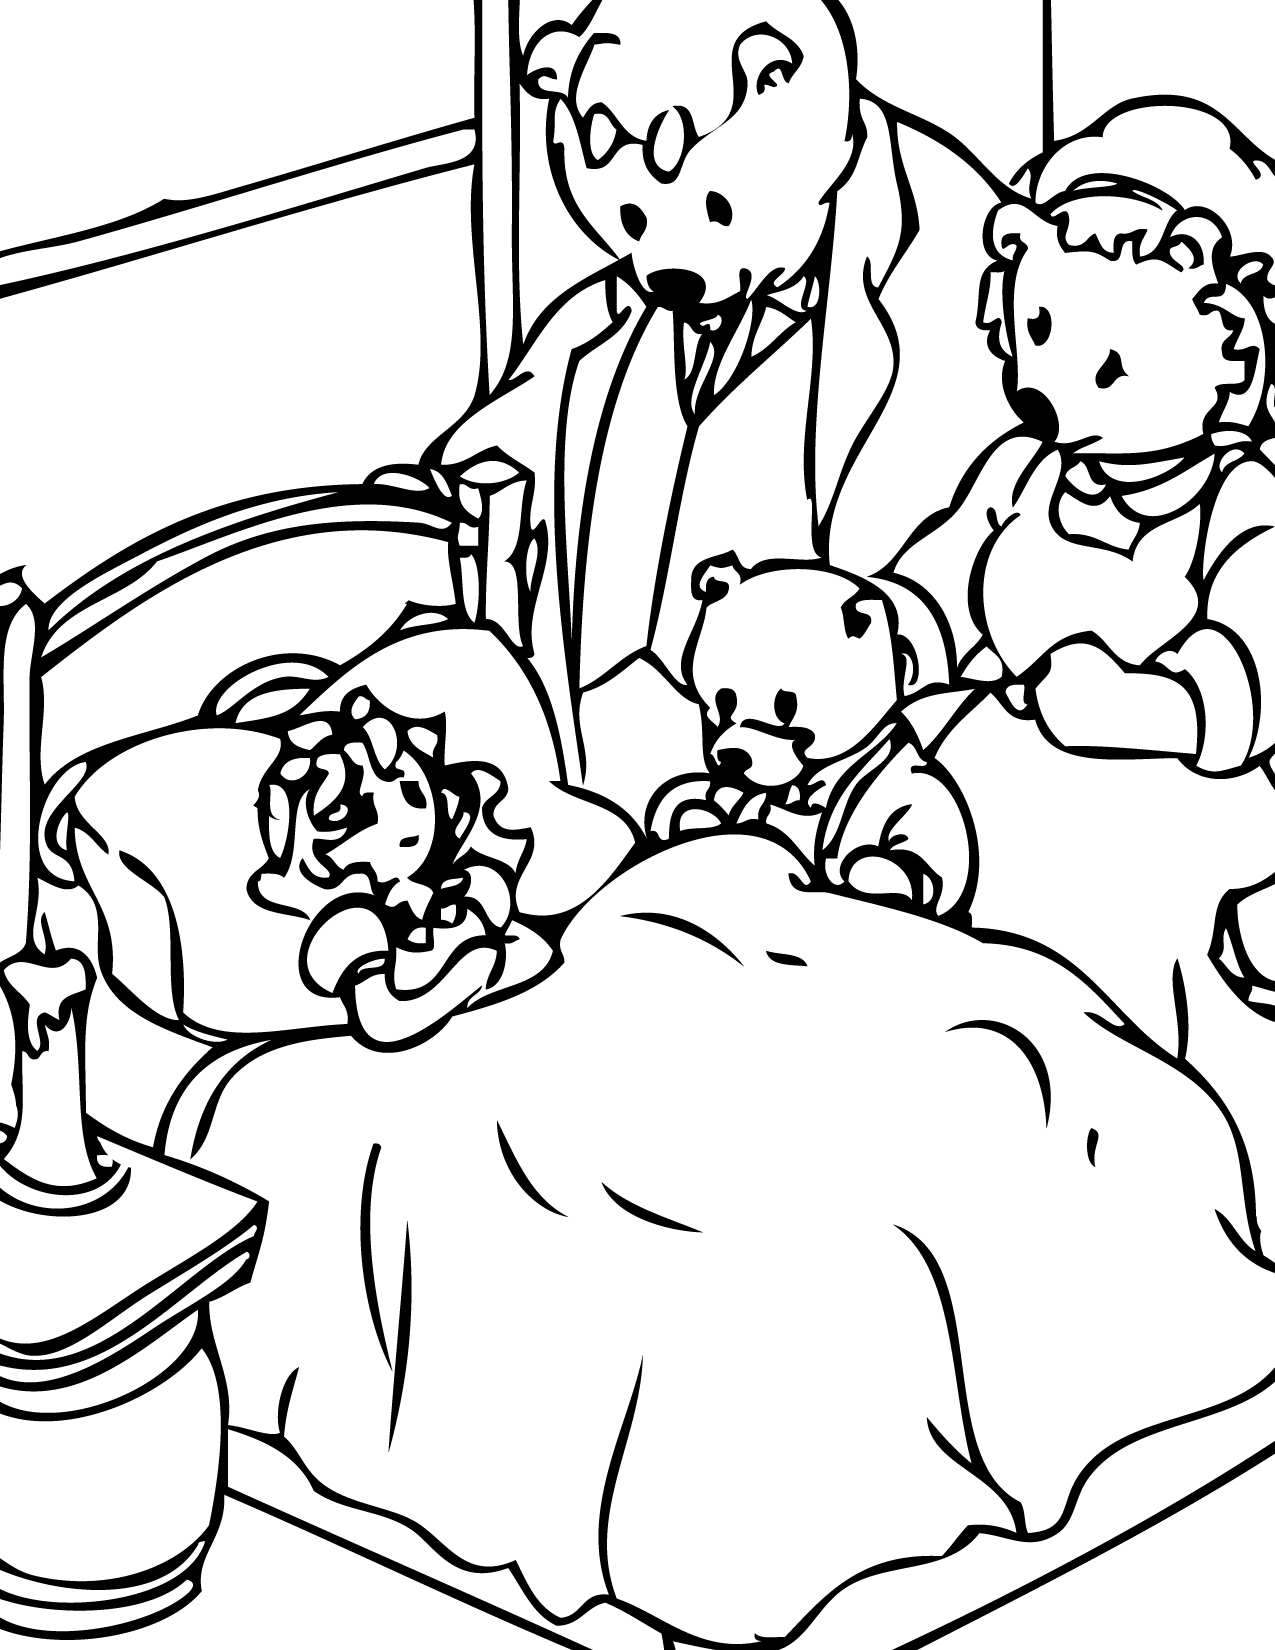 Asian Coloring Page | House colouring pages, Coloring pages, Adult ... | 1650x1275